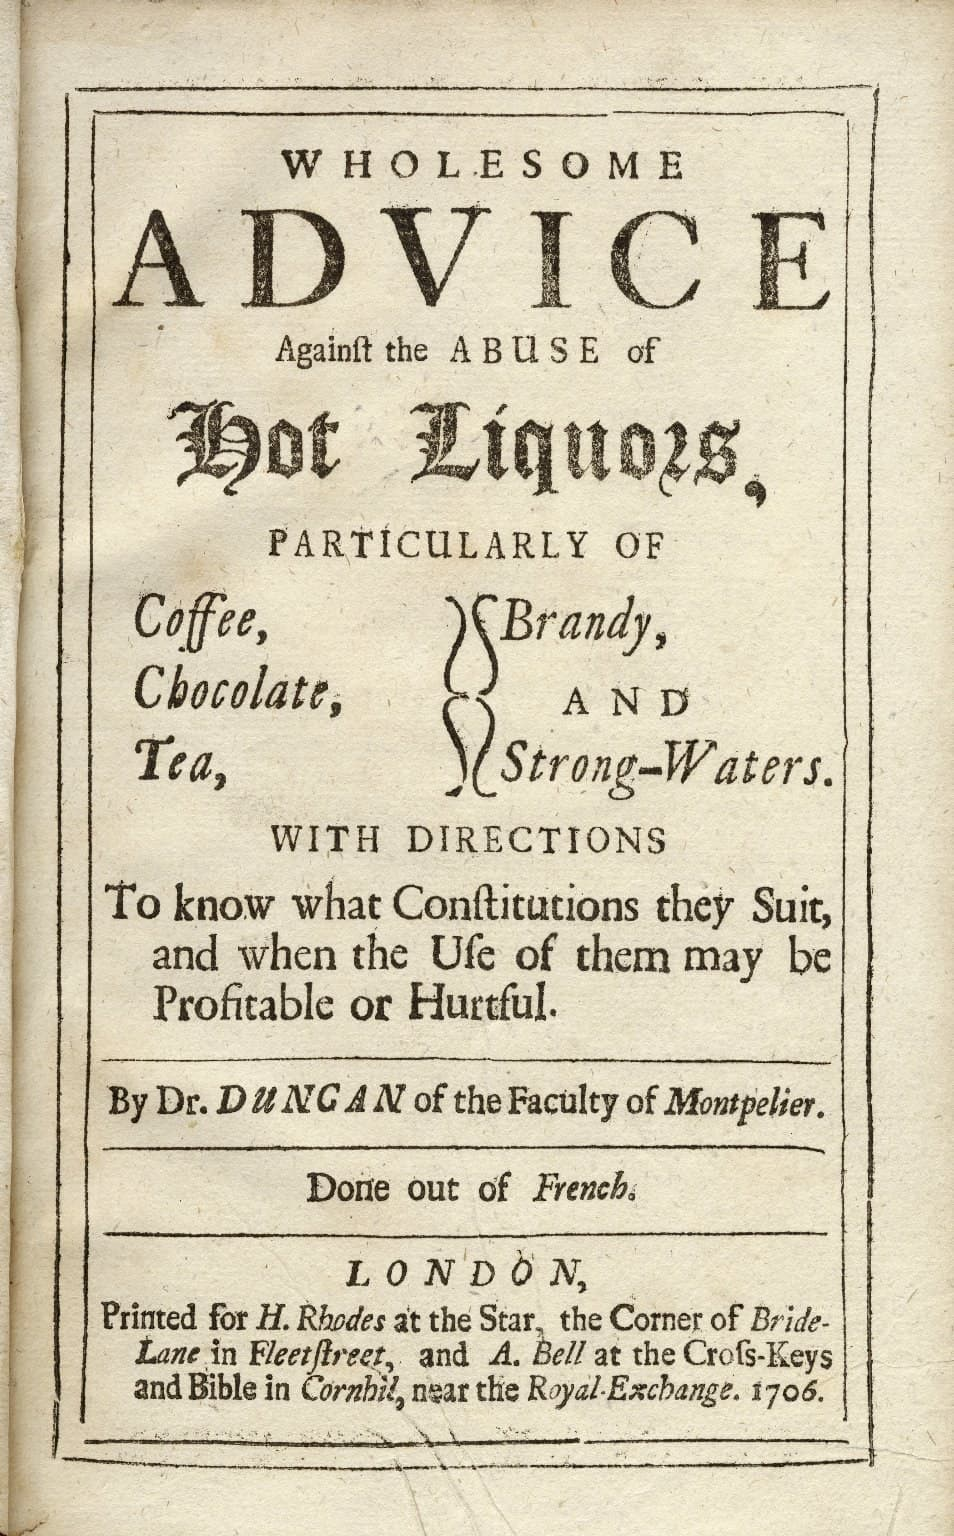 Wholesome Advice against the Abuse of Hot Liquors Title Page